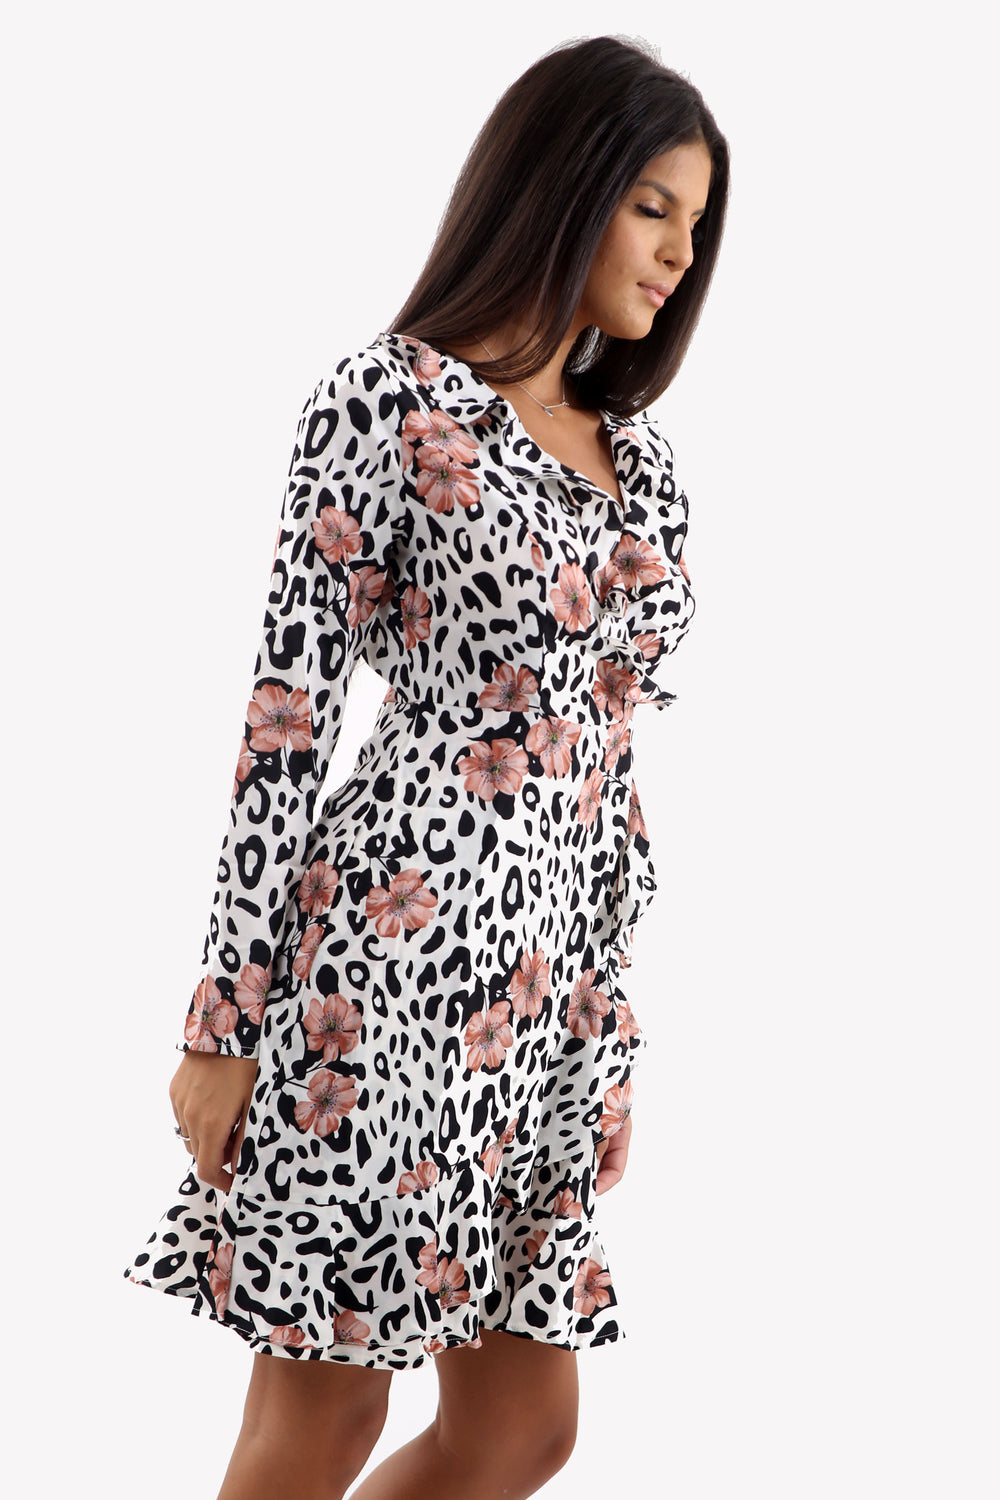 White Animal Print Wrap Mini Dress With Pink Floral Design